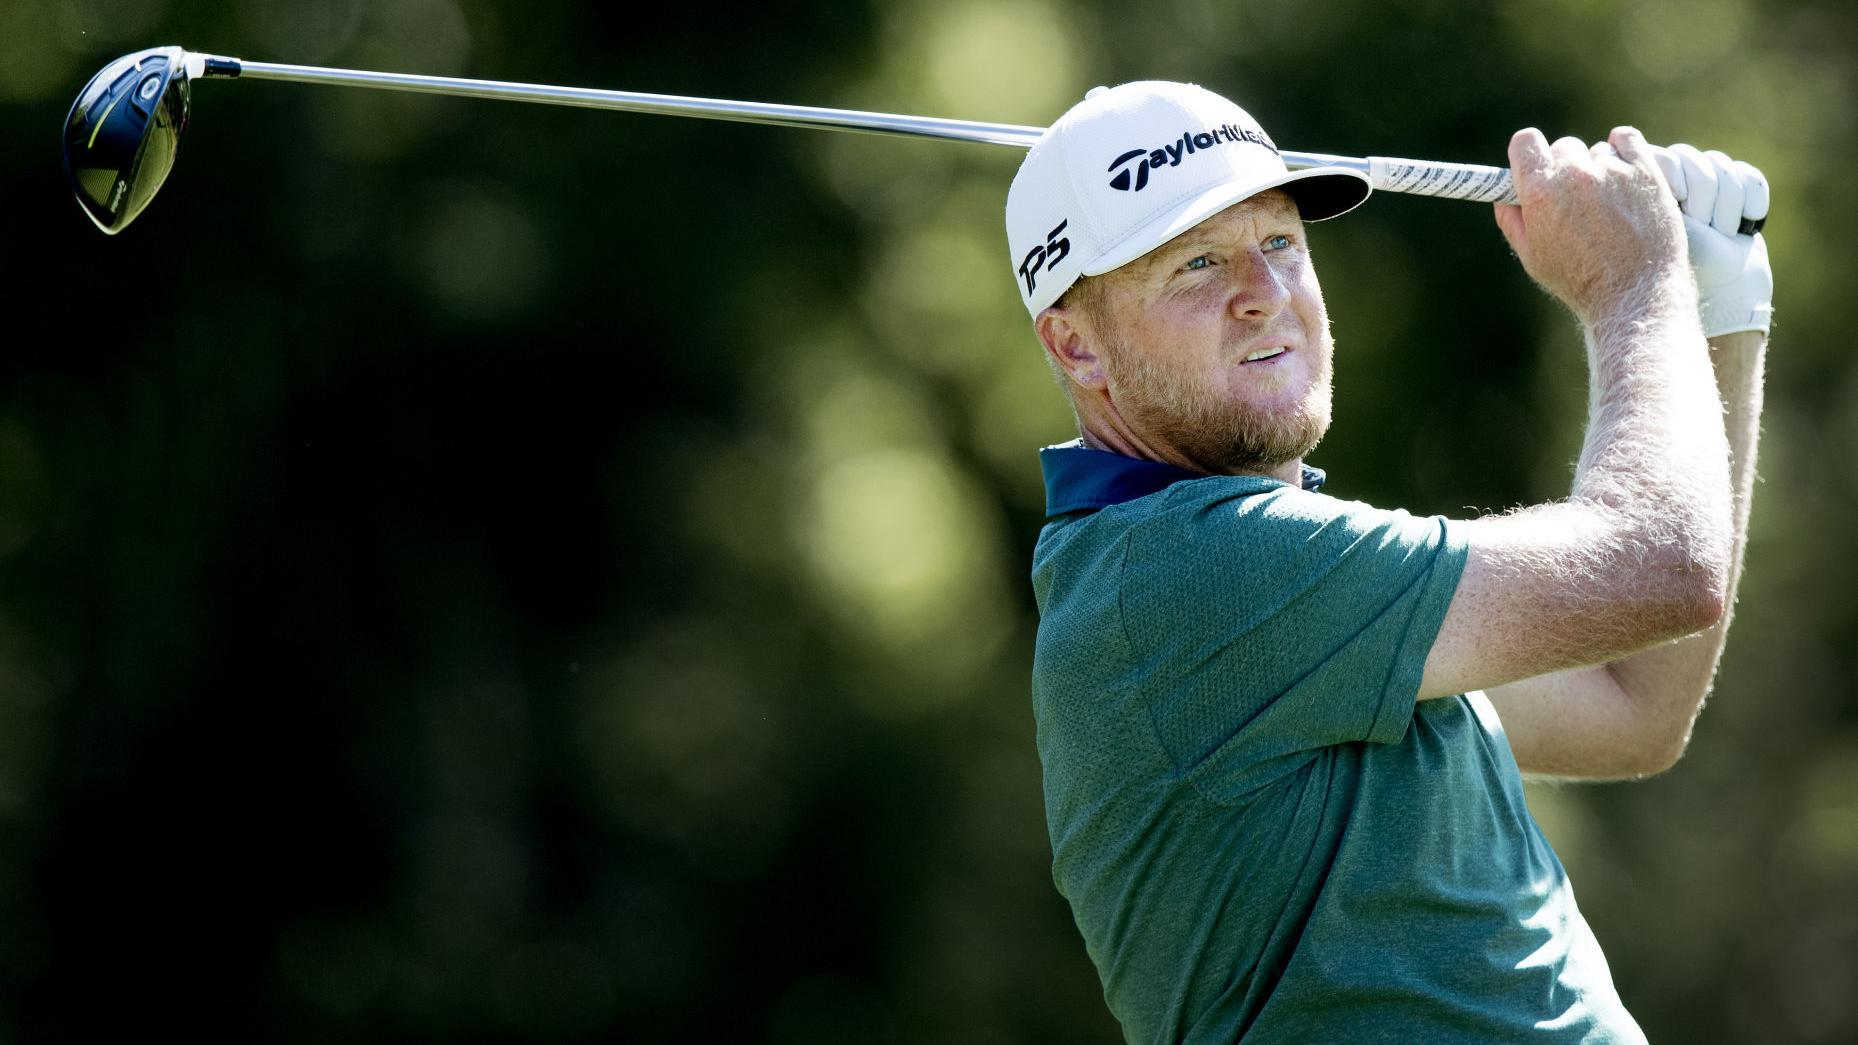 us open golf live coverage online free